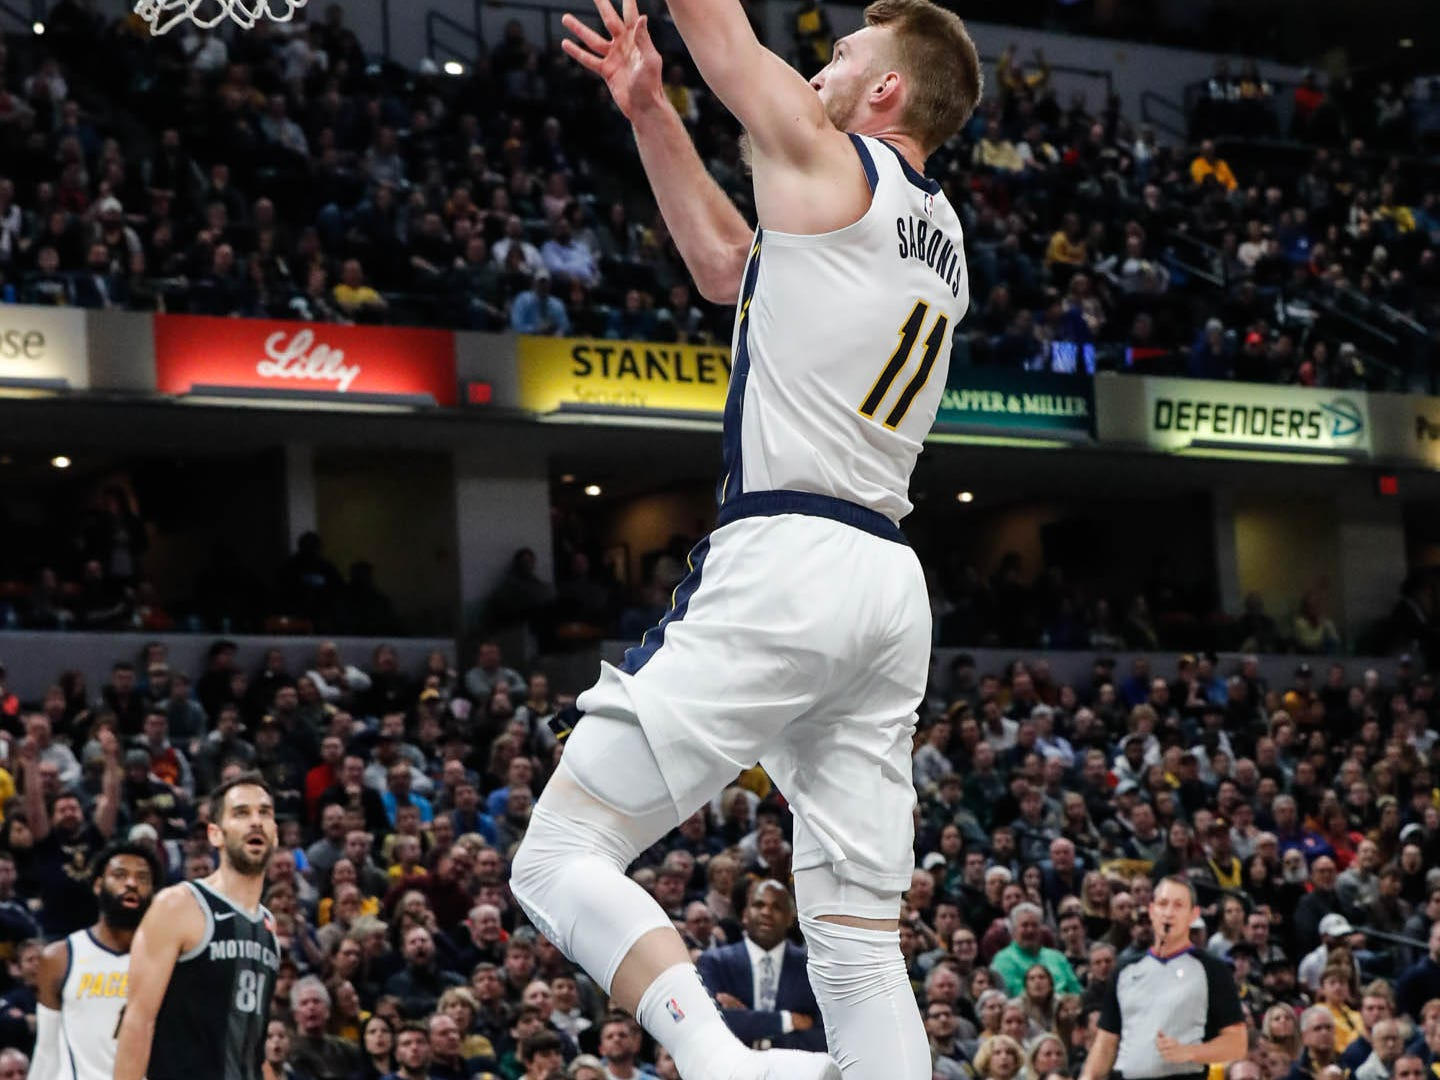 Indiana Pacer's forward Domantas Sabonis (11) hits a big dunk during a game between the Indiana Pacers and the Detroit Pistons at at Bankers Life Fieldhouse in Indianapolis on Friday, Dec. 28, 2018.